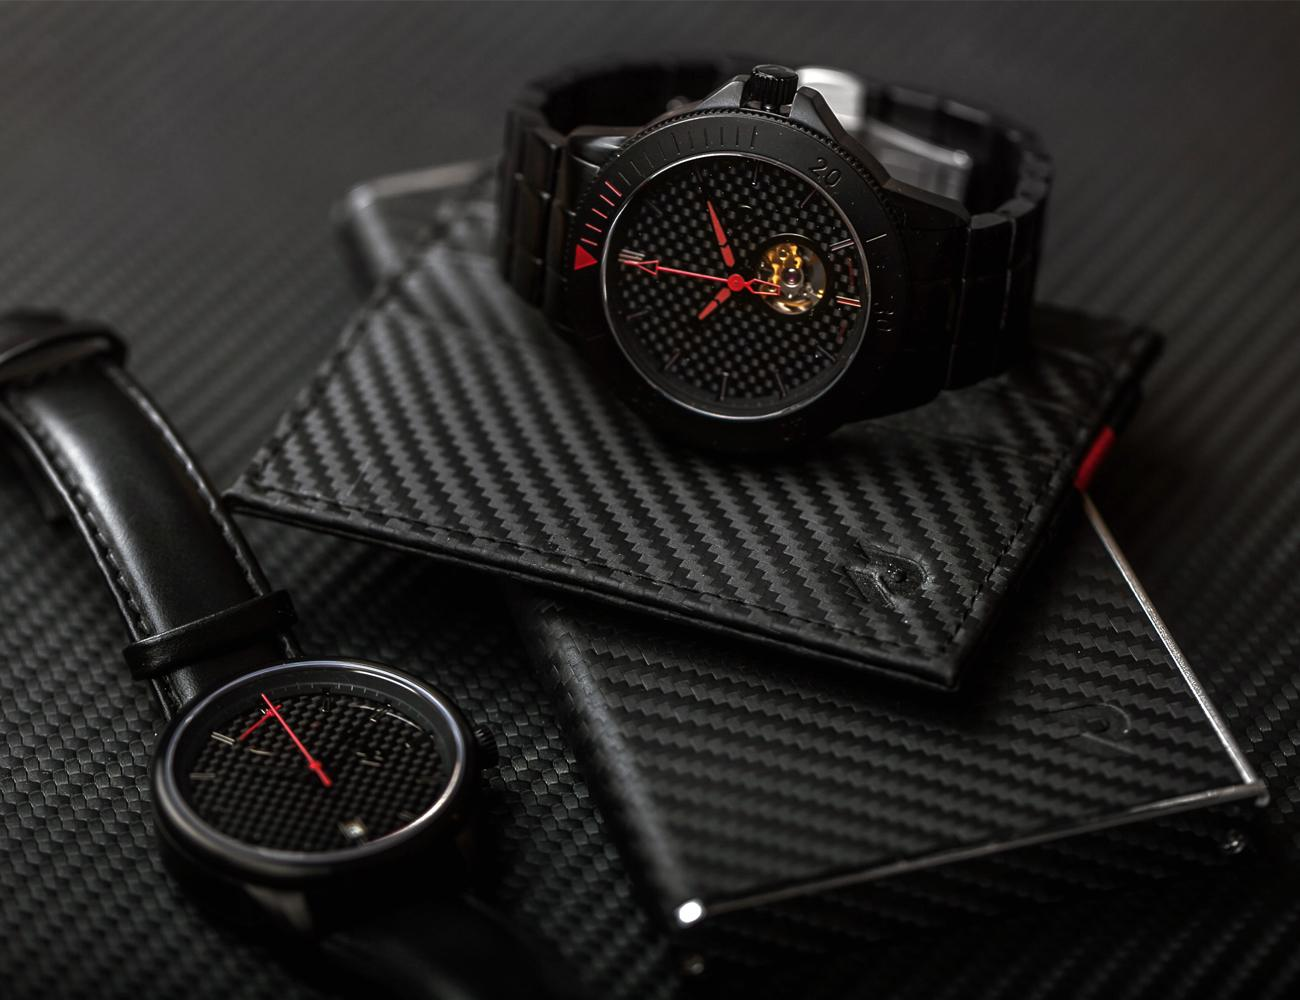 Auto+%26%238211%3B+Automatic+Watch+Series+Inspired+By+Carbon+Fiber